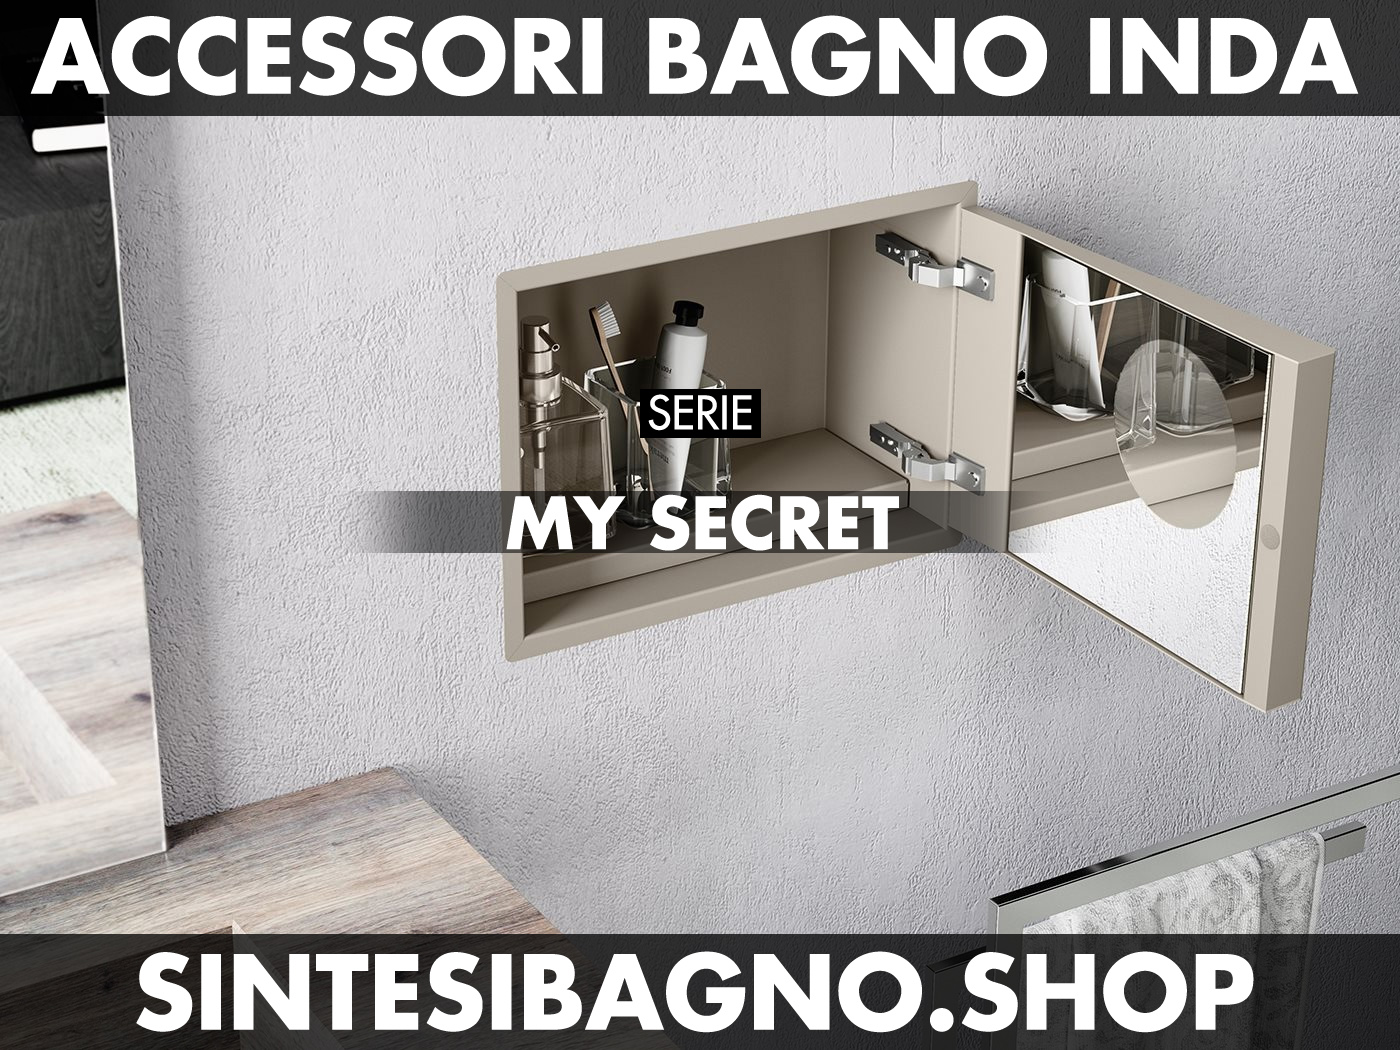 Accessori Bagno Inda serie MY SECRET